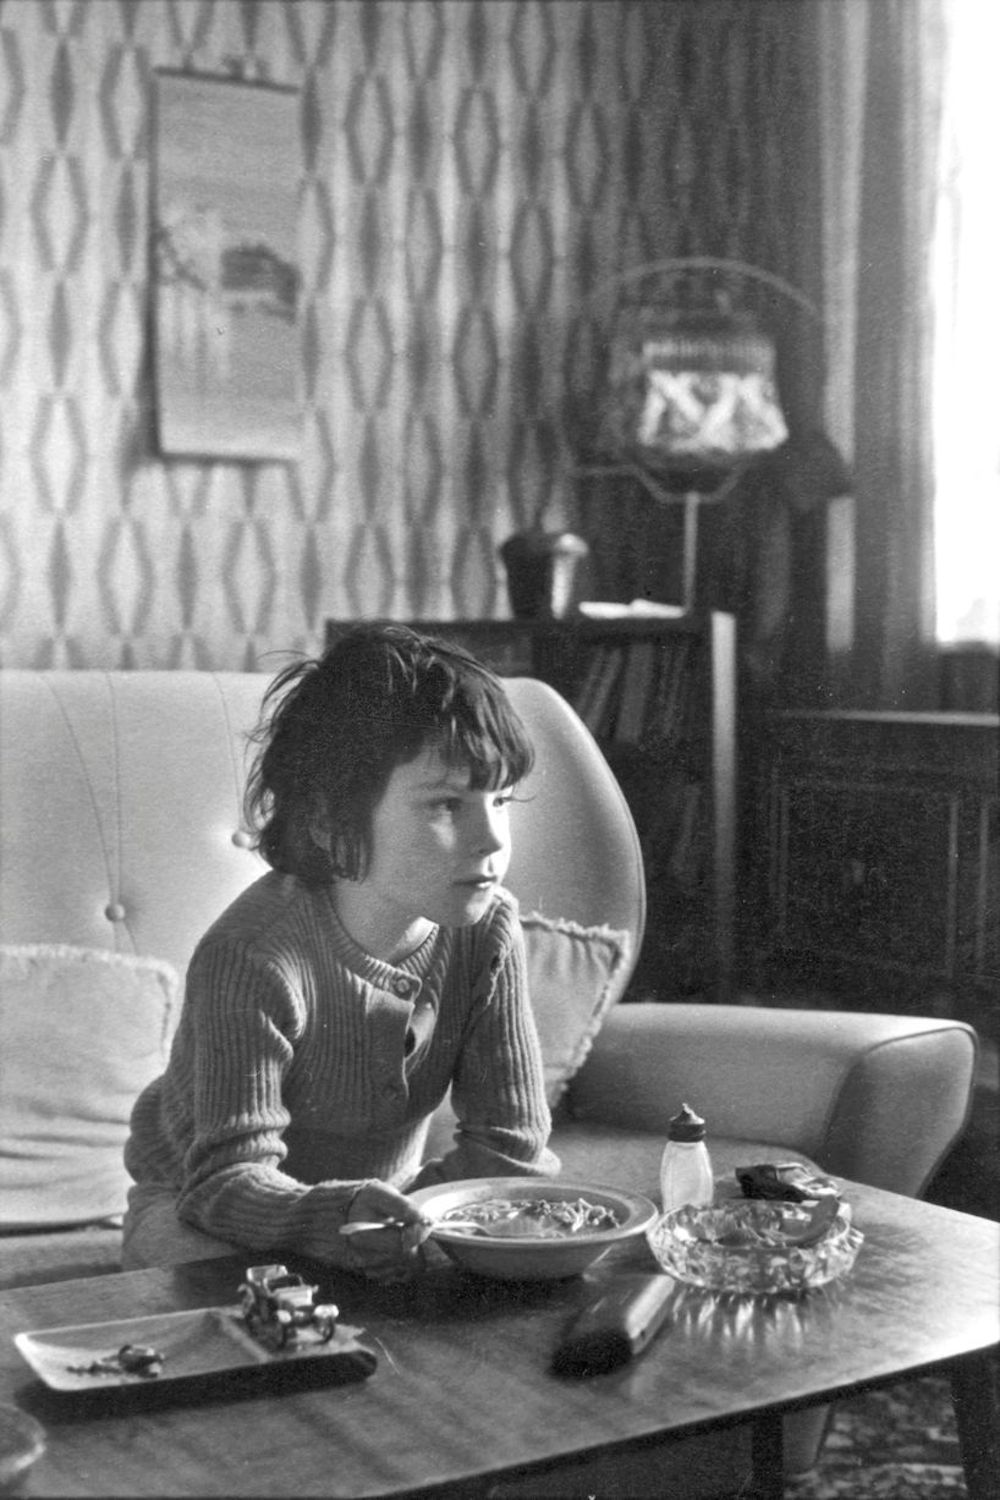 Boy at lunch, 1974, Toxteth, Liverpool